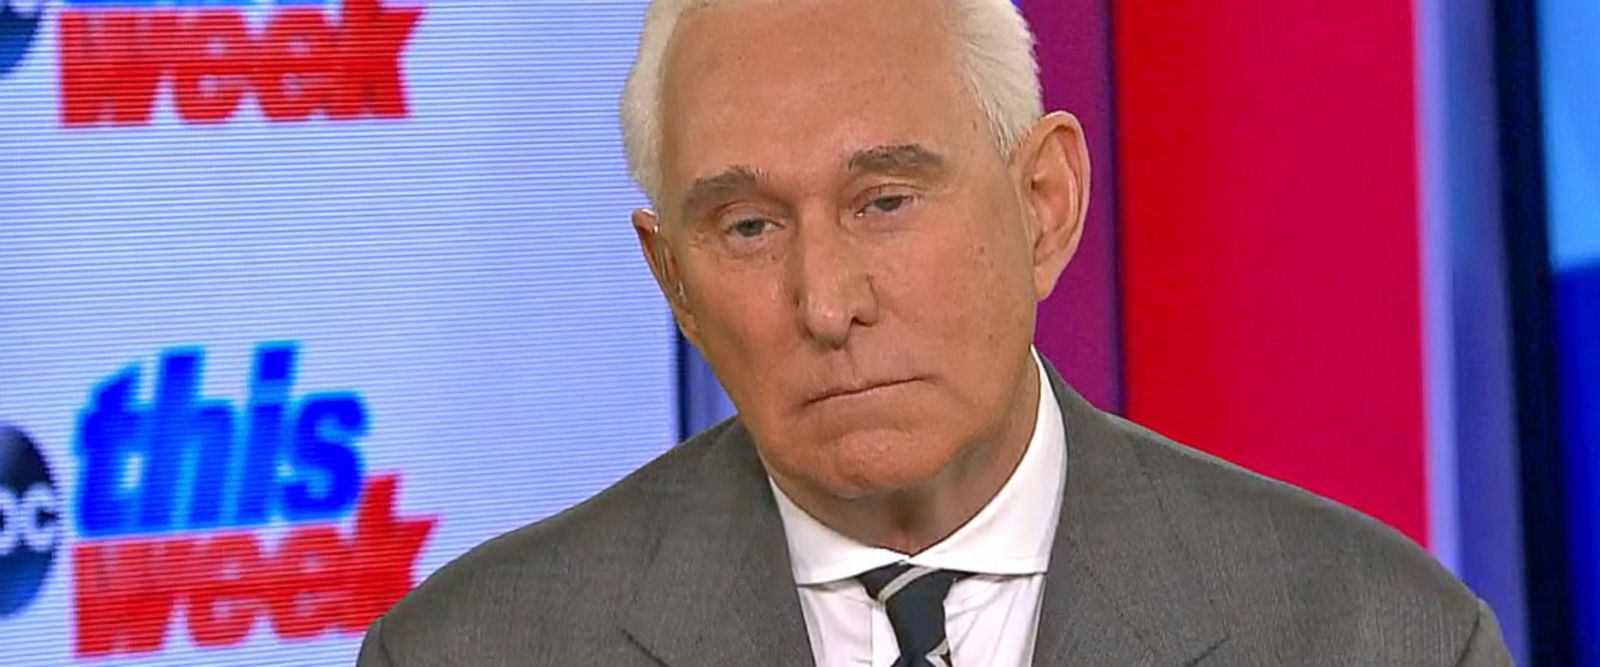 VIDEO: Longtime Trump advisor Roger Stone on the president's agenda